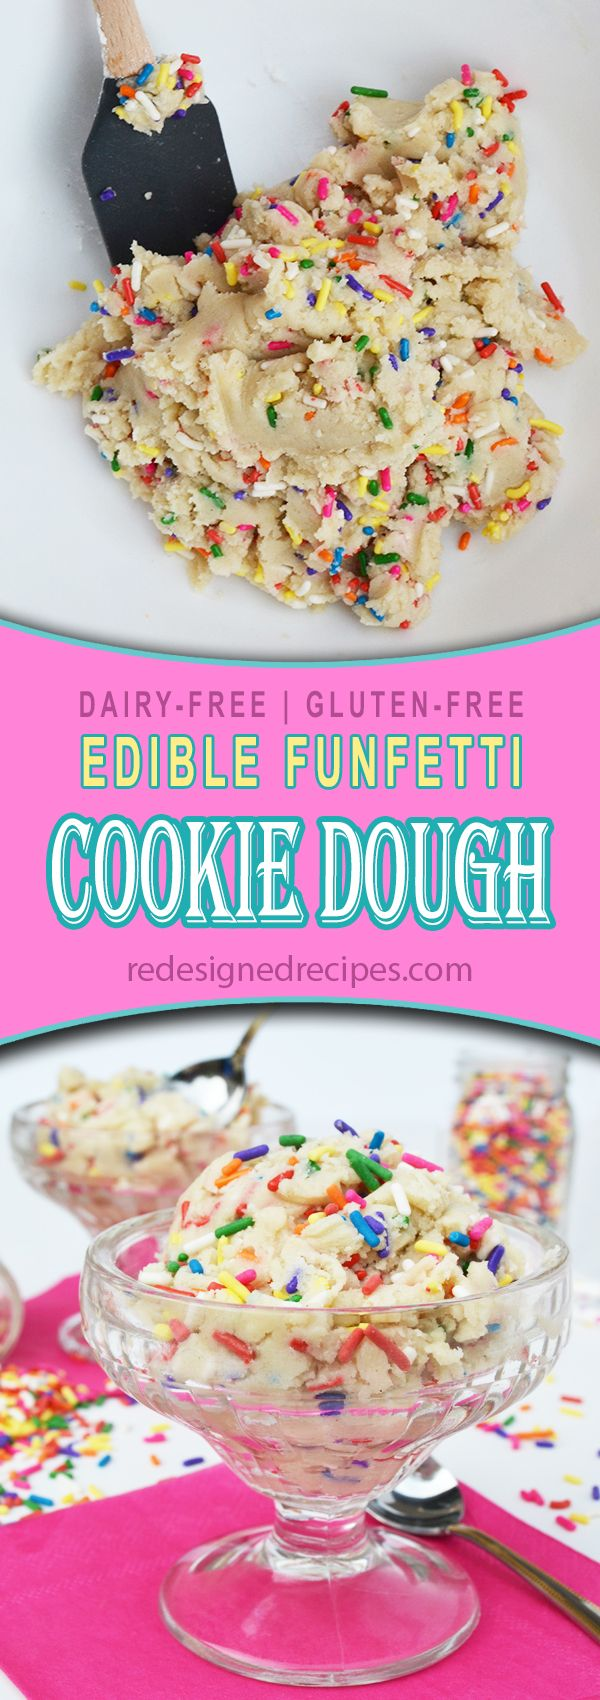 Edible Funfetti Cookie Dough - Redesigned Recipes